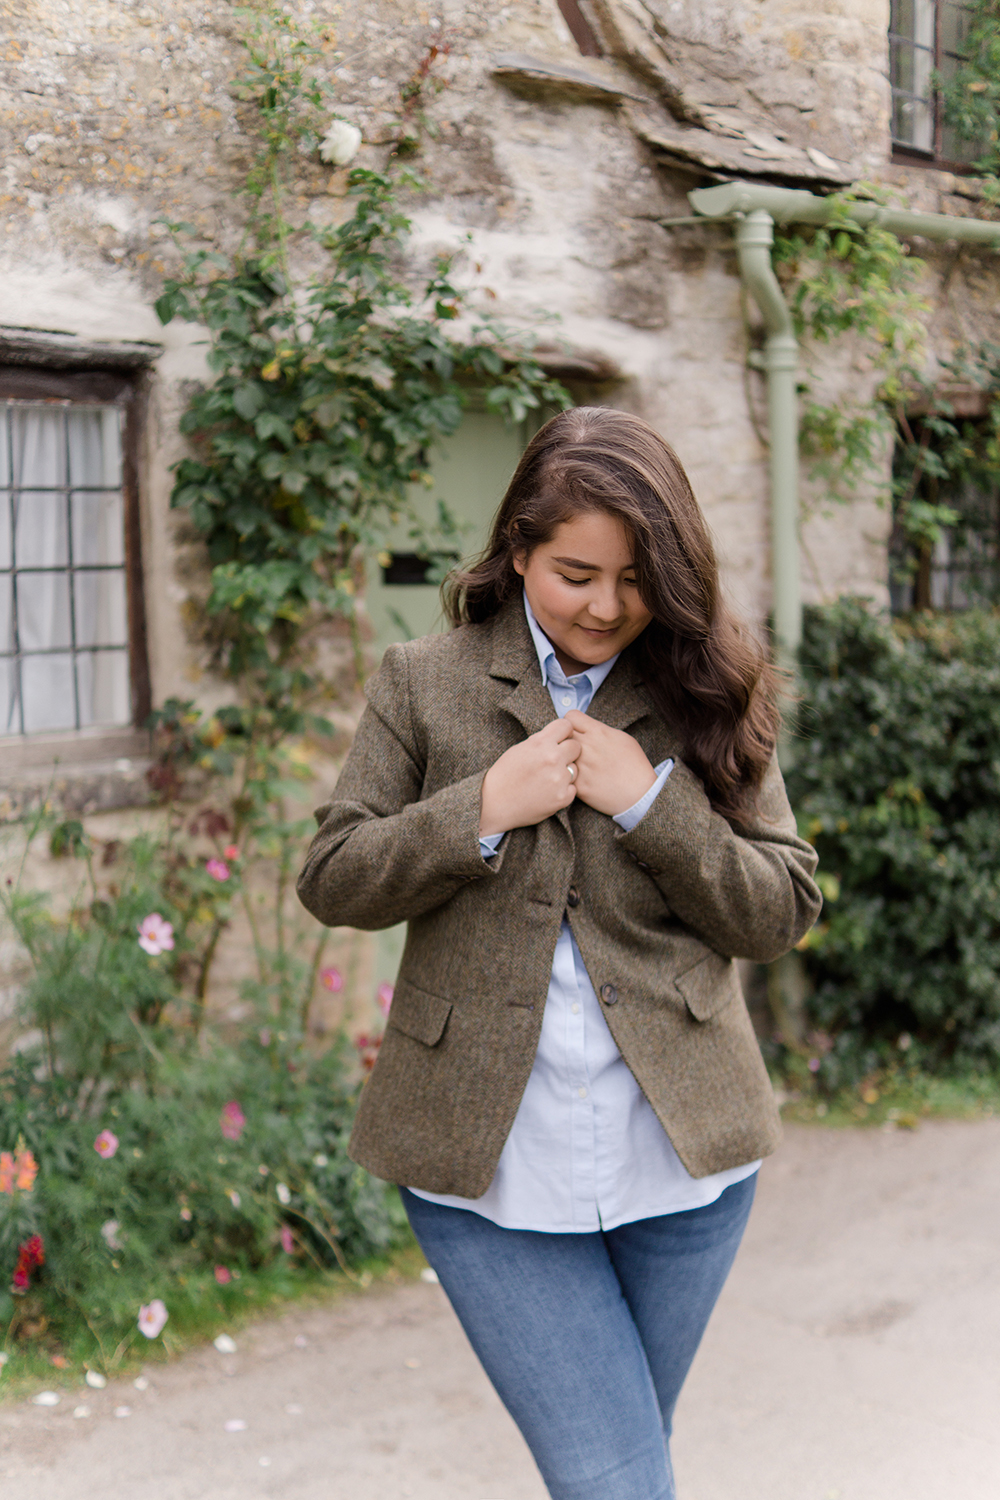 tweed-jacket-loafers-classic-style-ootd-bibury-barely-there-beauty-blog